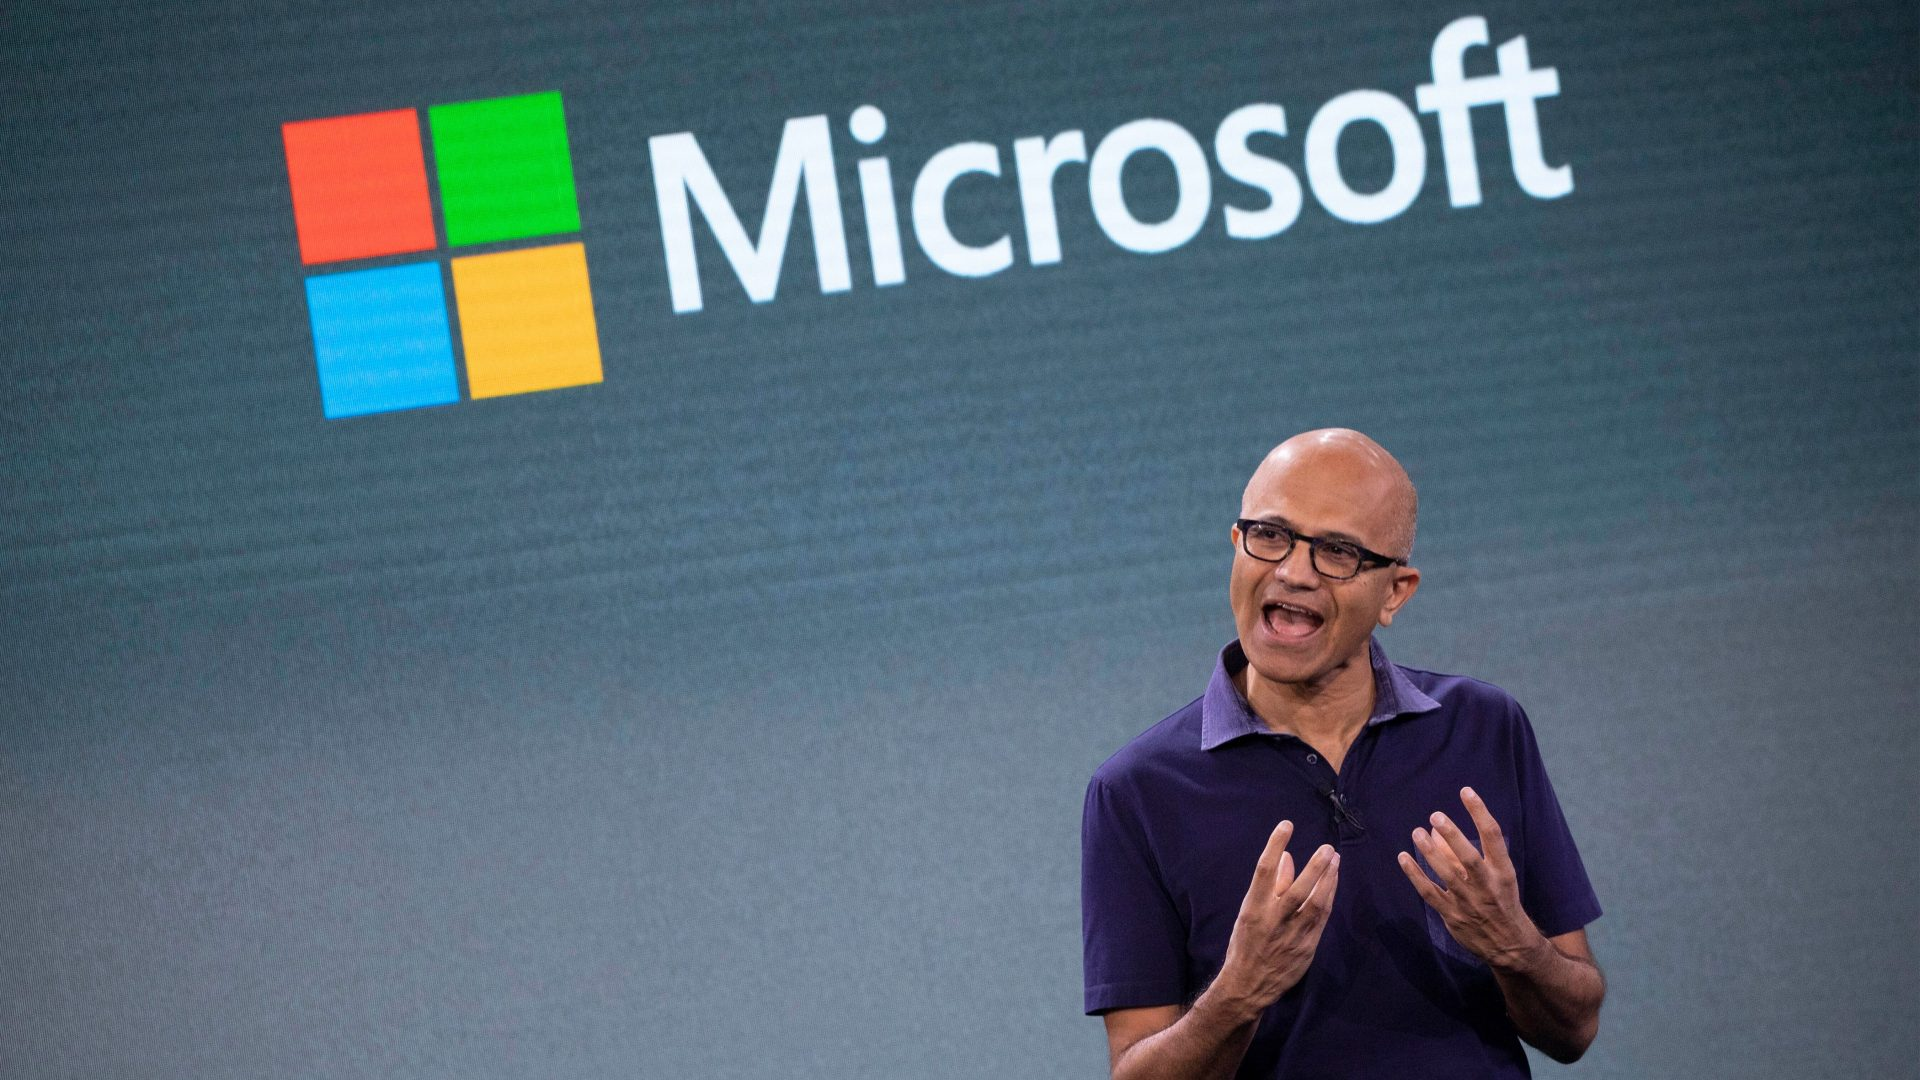 Mandatory Credit: Photo by Mark Lennihan/AP/Shutterstock (10434360b)Microsoft CEO Satya Nadella talks during a company event, in New YorkMicrosoft Event, New York, USA - 02 Oct 2019.